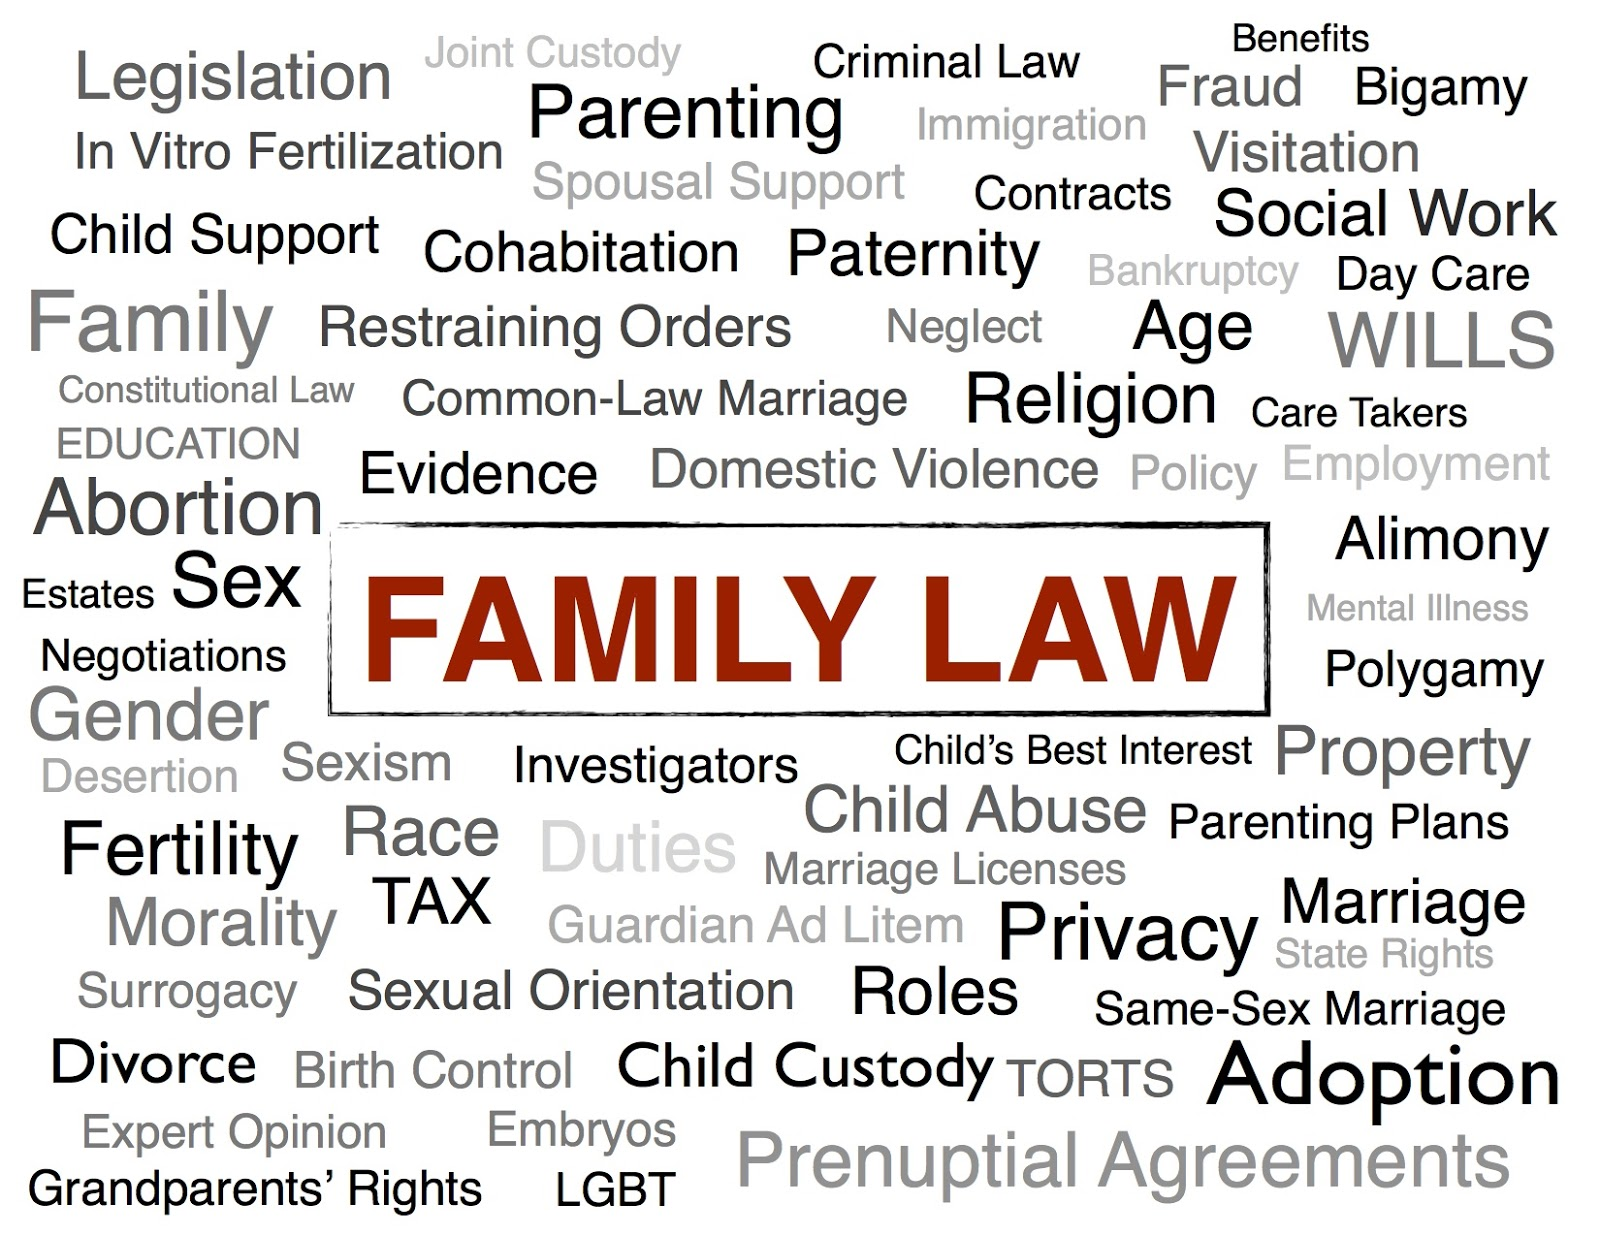 different types of law job opportunities in family law on the amily law is one of the different types of law that can lead to a rewarding